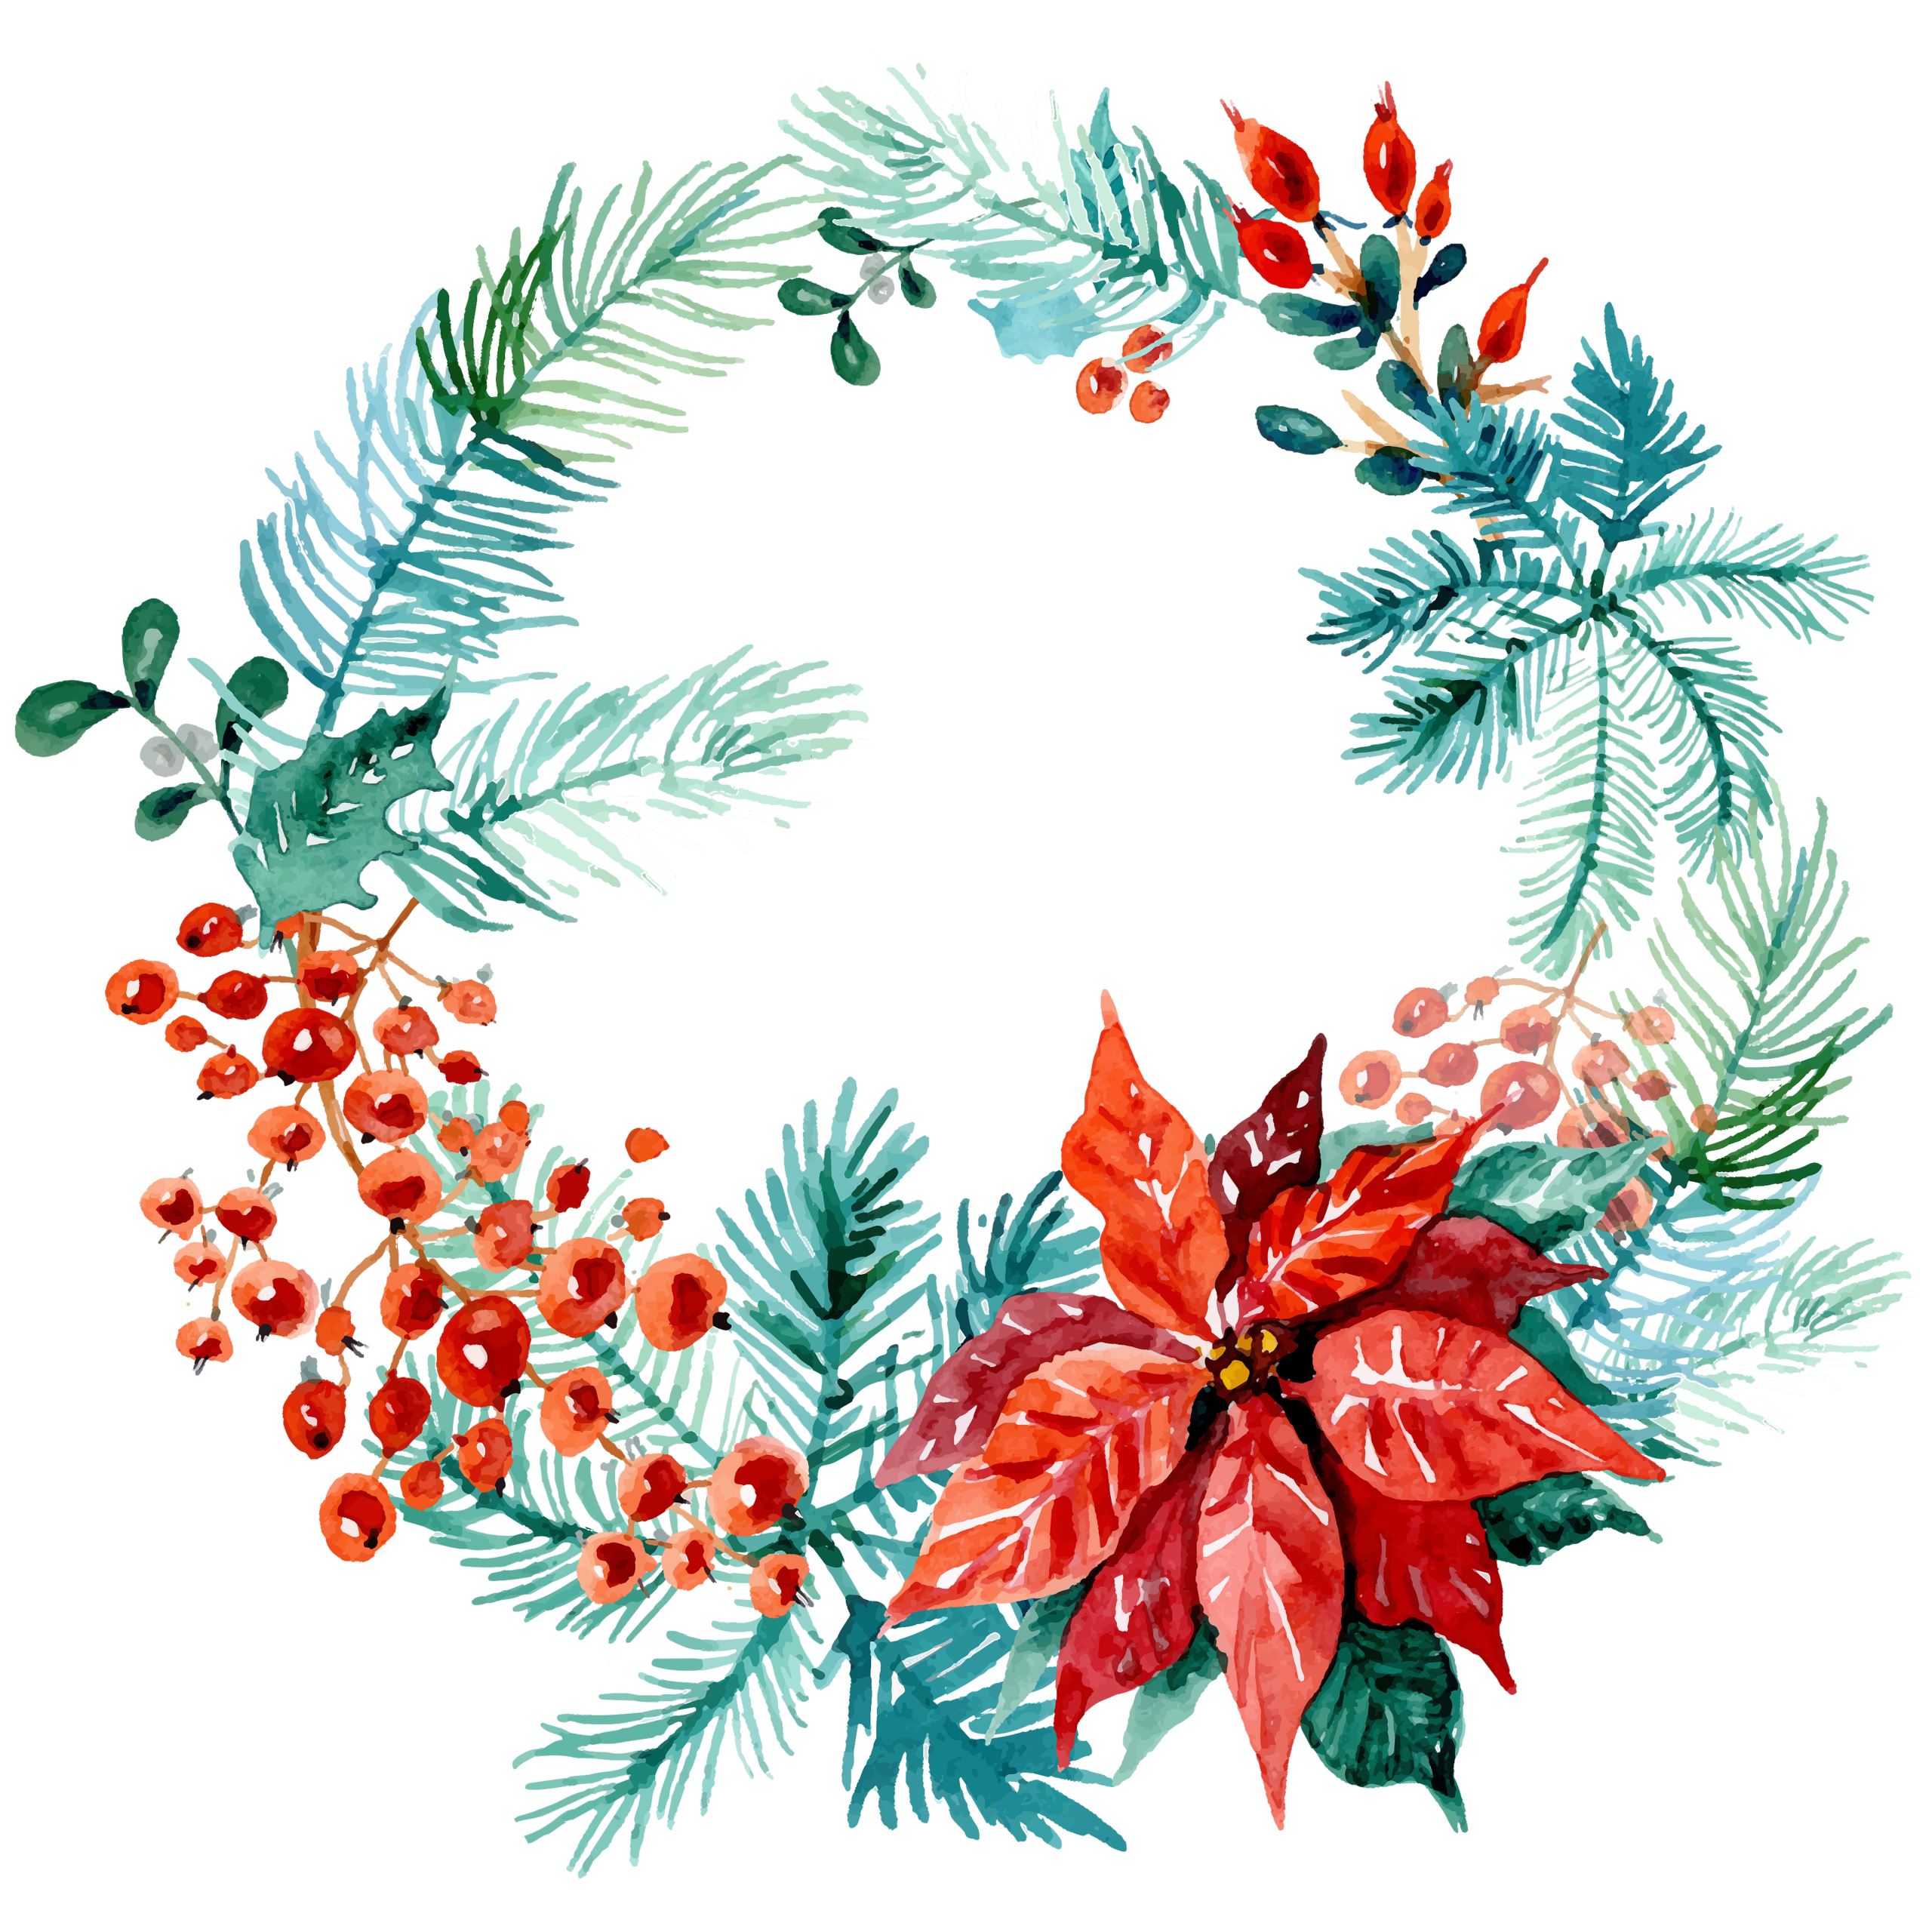 Thanksgiving Royalty Free Image >> Free Christmas Watercolor Wreaths! - Free Pretty Things For You